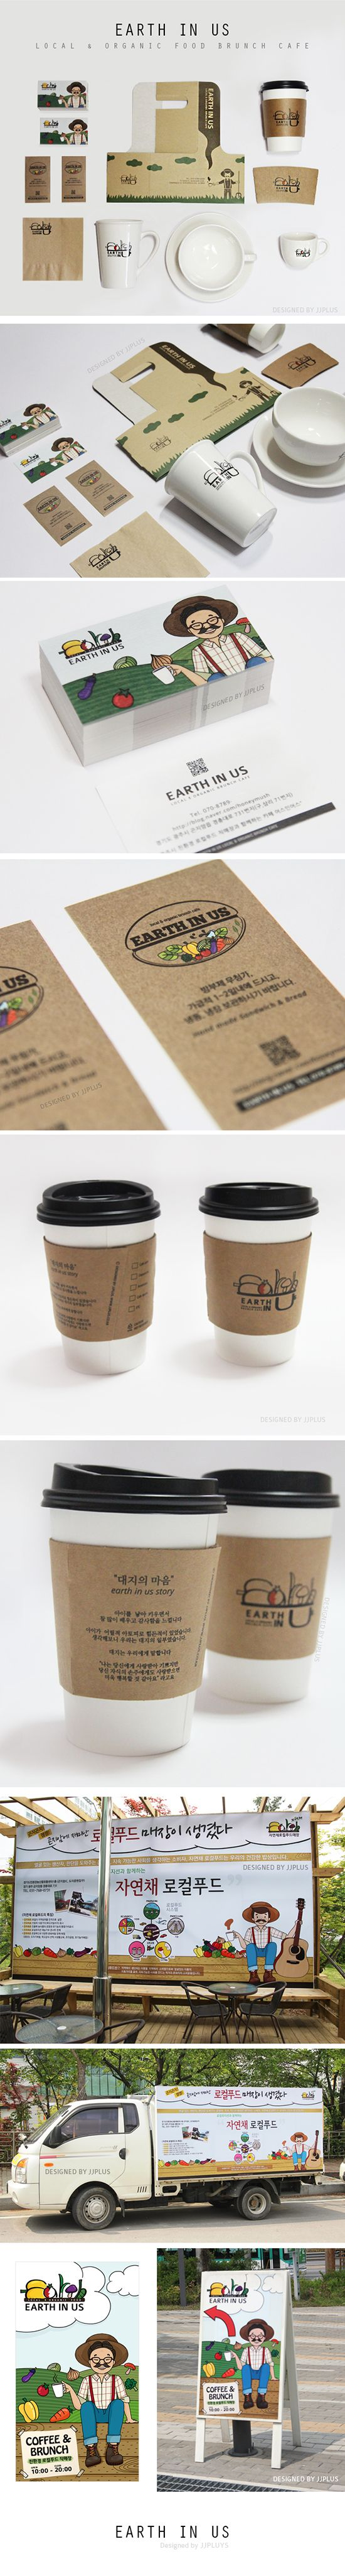 Designed by JJPLUS. package design for cafe EARTH IN US.